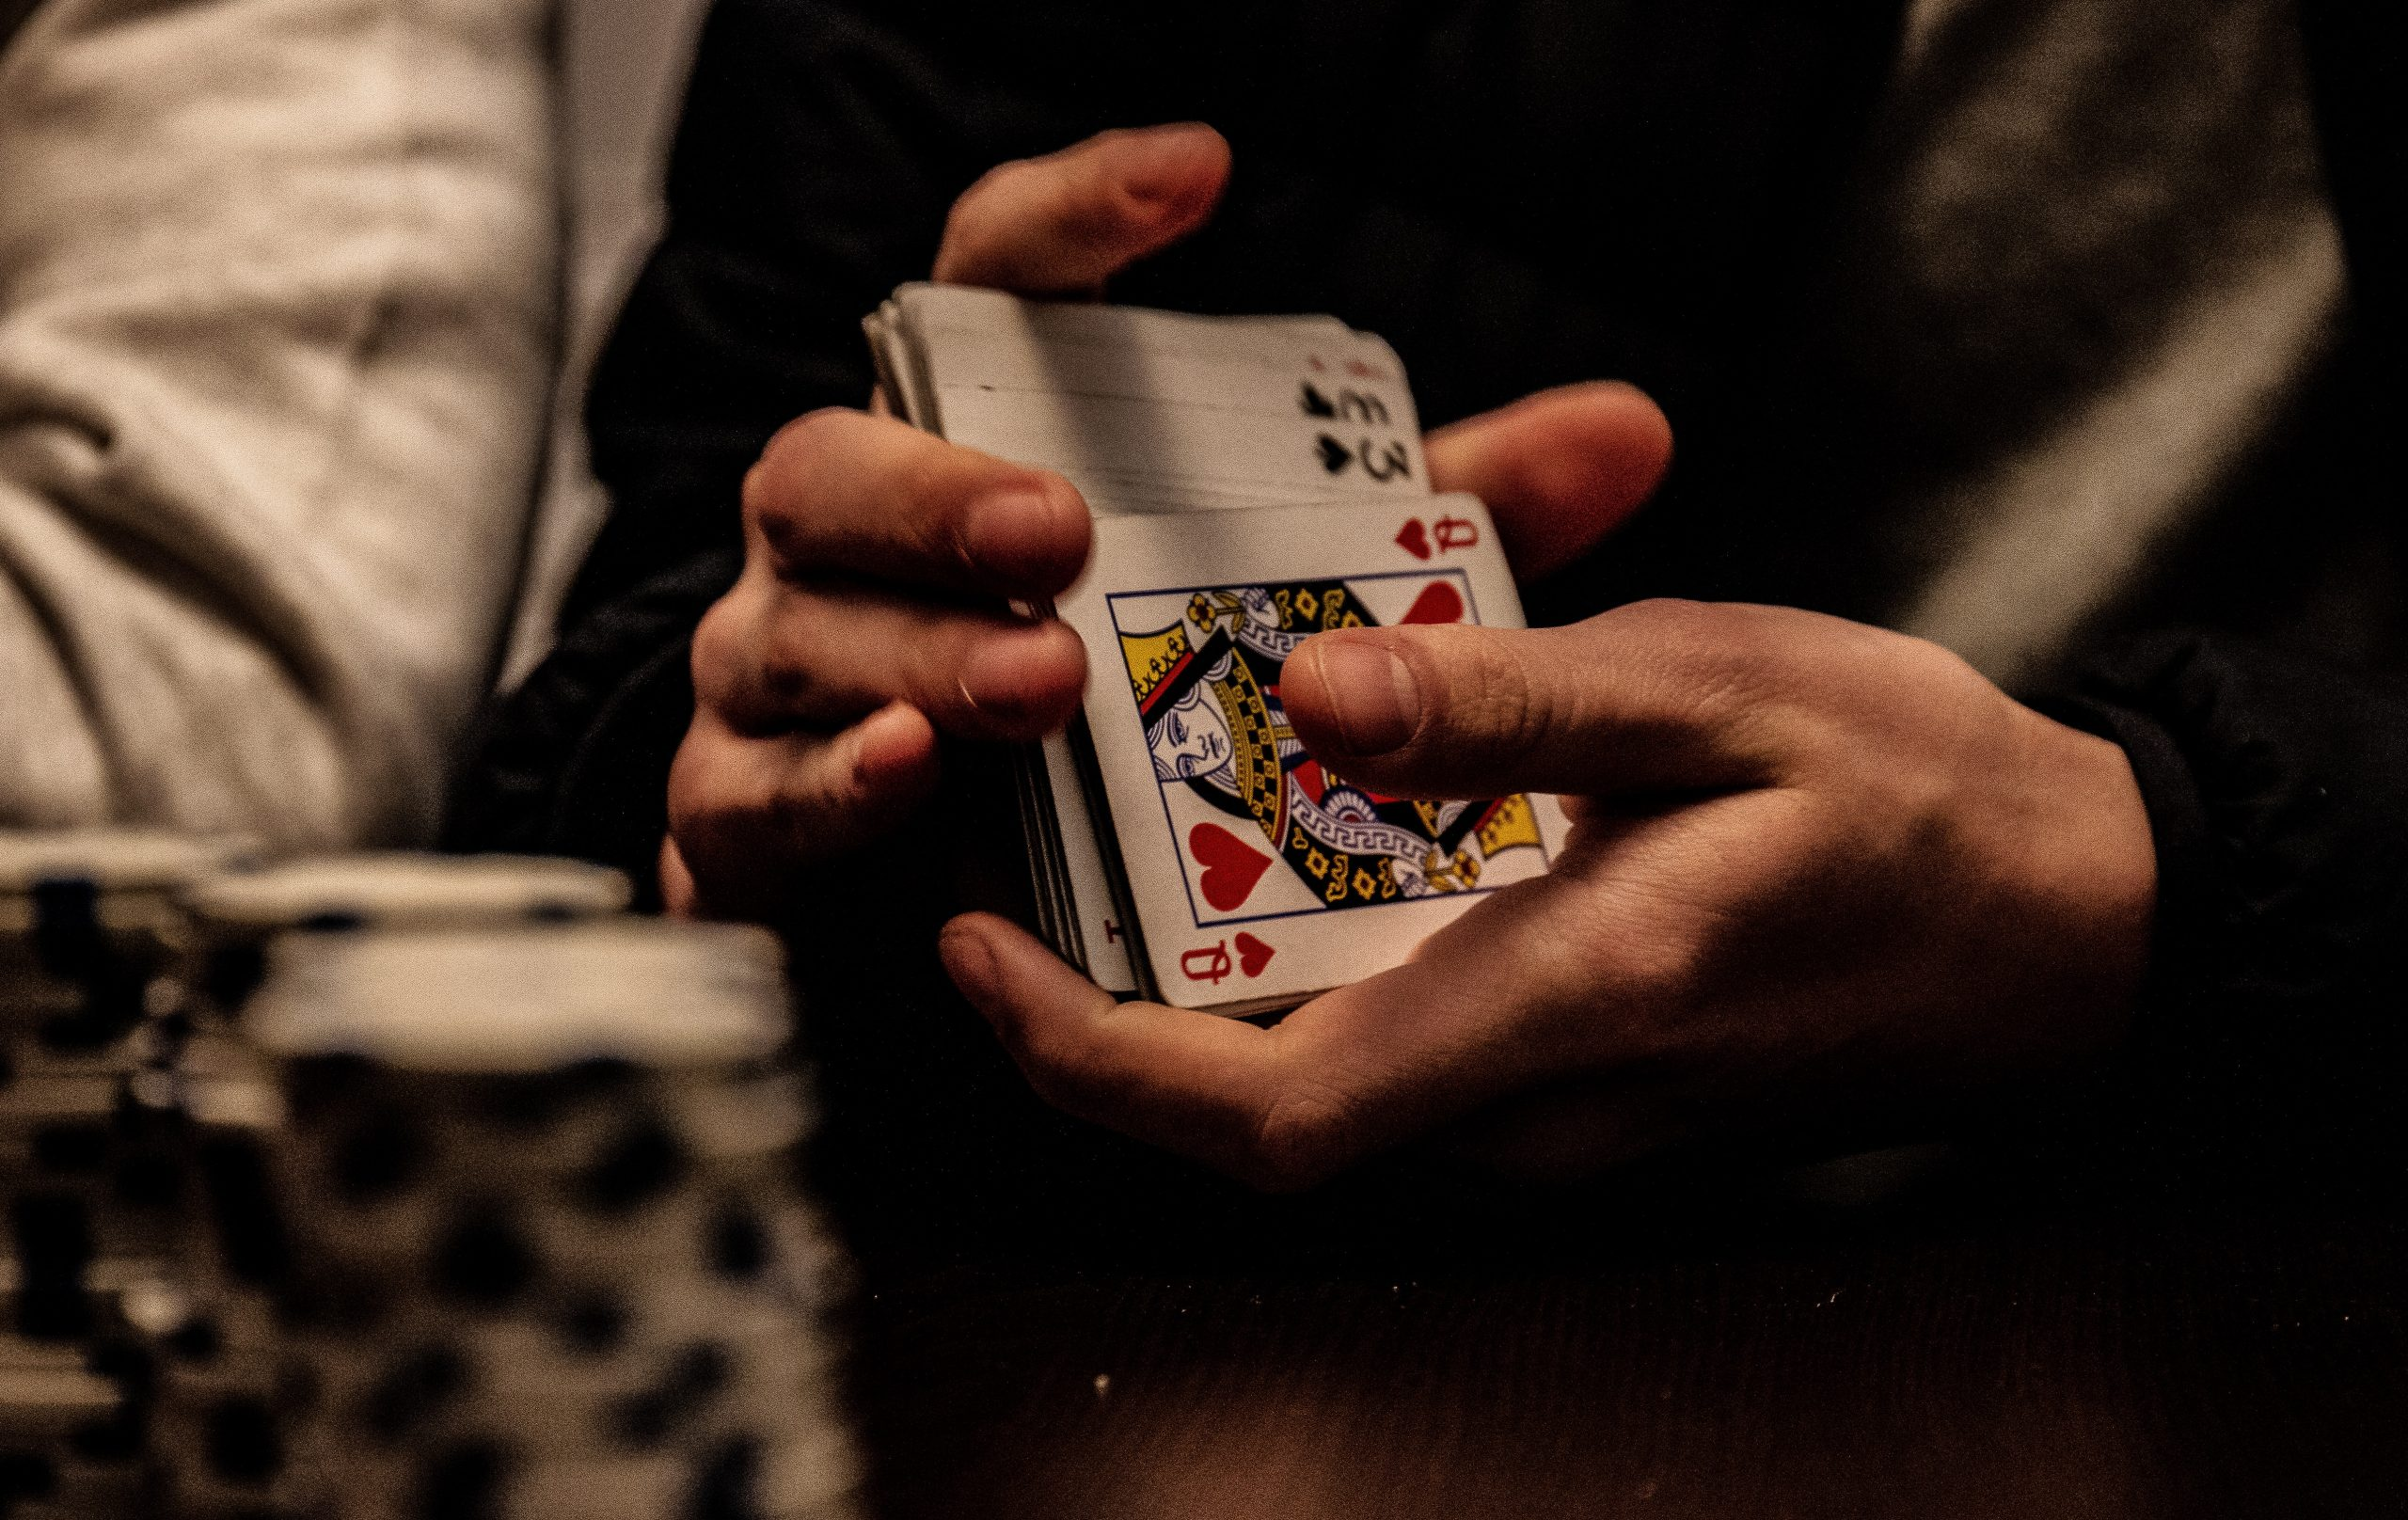 in an article about gambling, someone shuffling playing cards